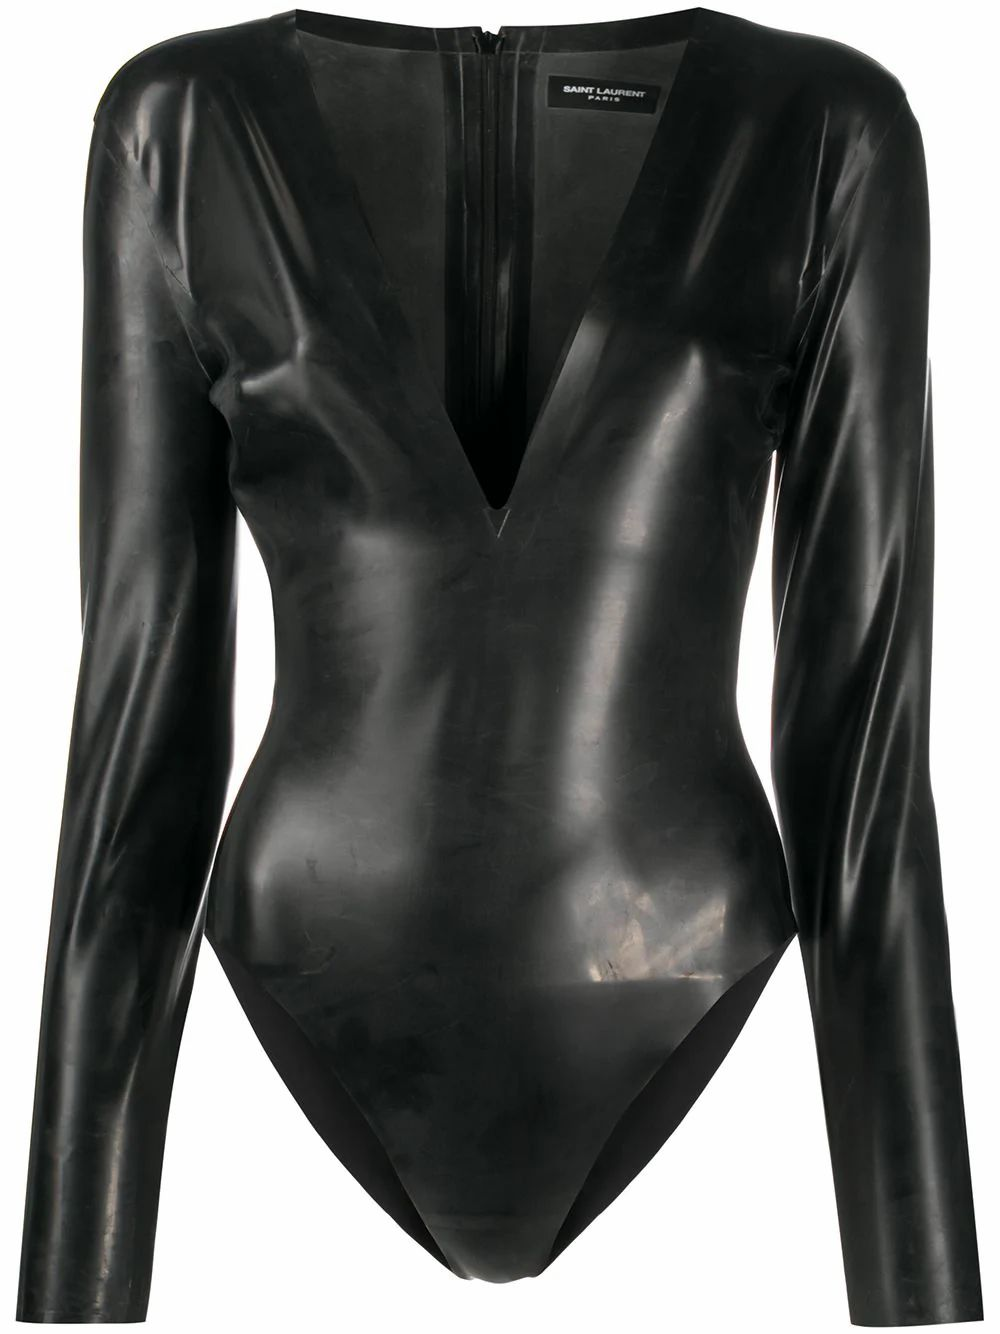 Saint Laurent SAINT LAURENT WOMEN'S BLACK RUBBER BODYSUIT